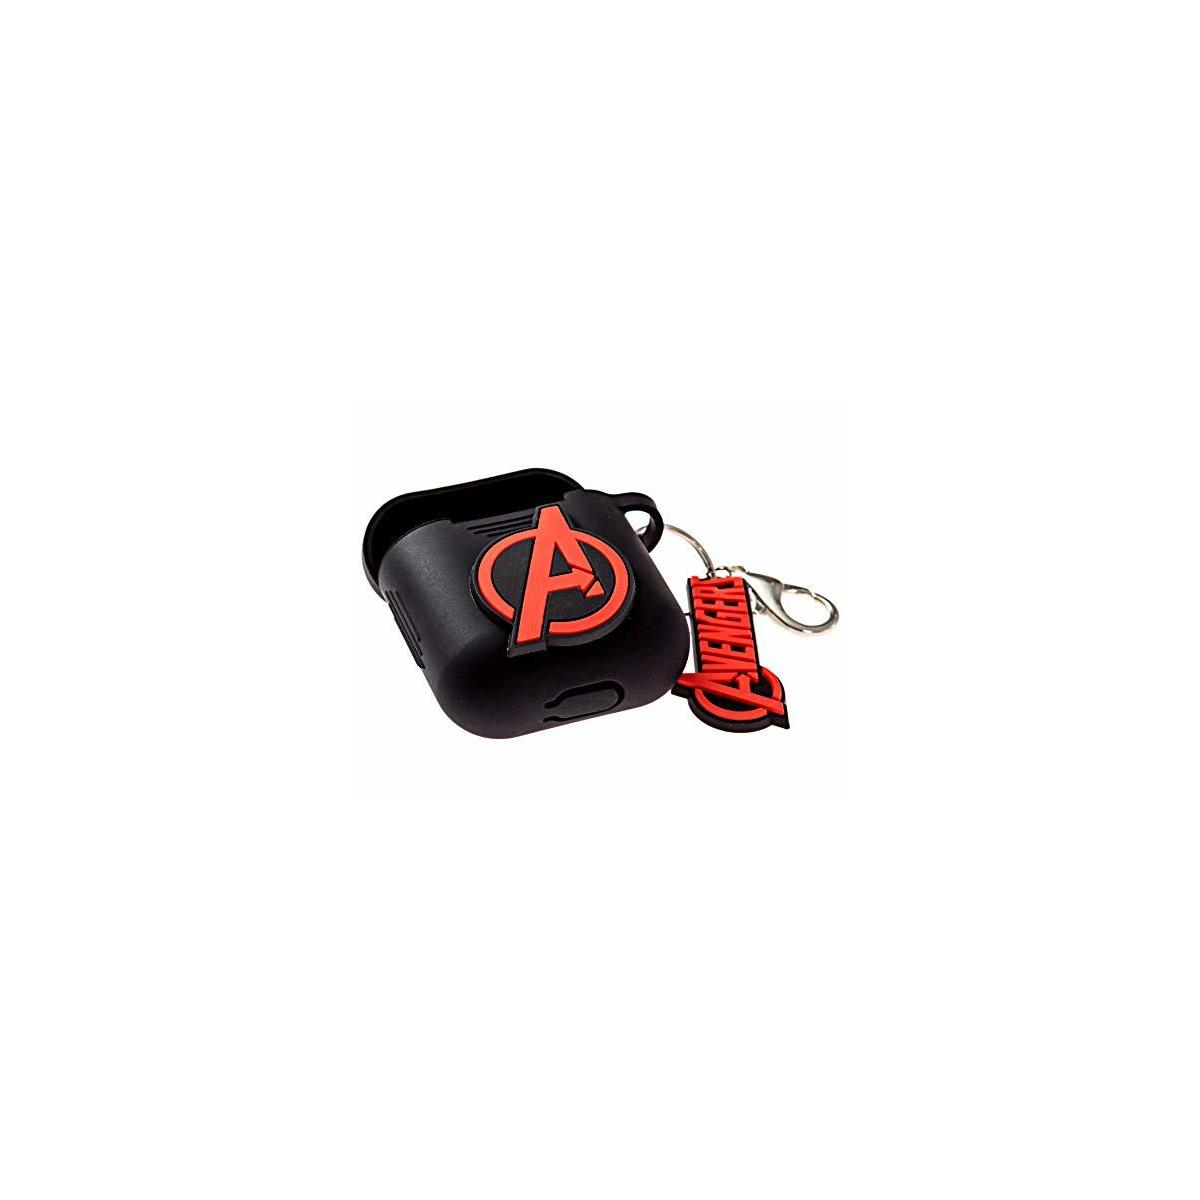 REBATE ONLY FOR : Color: Avengers   -  Marvel AirPods Case Cover for Apple Airpods Compatible with Apple AirPods 1 & 2 Charging Case